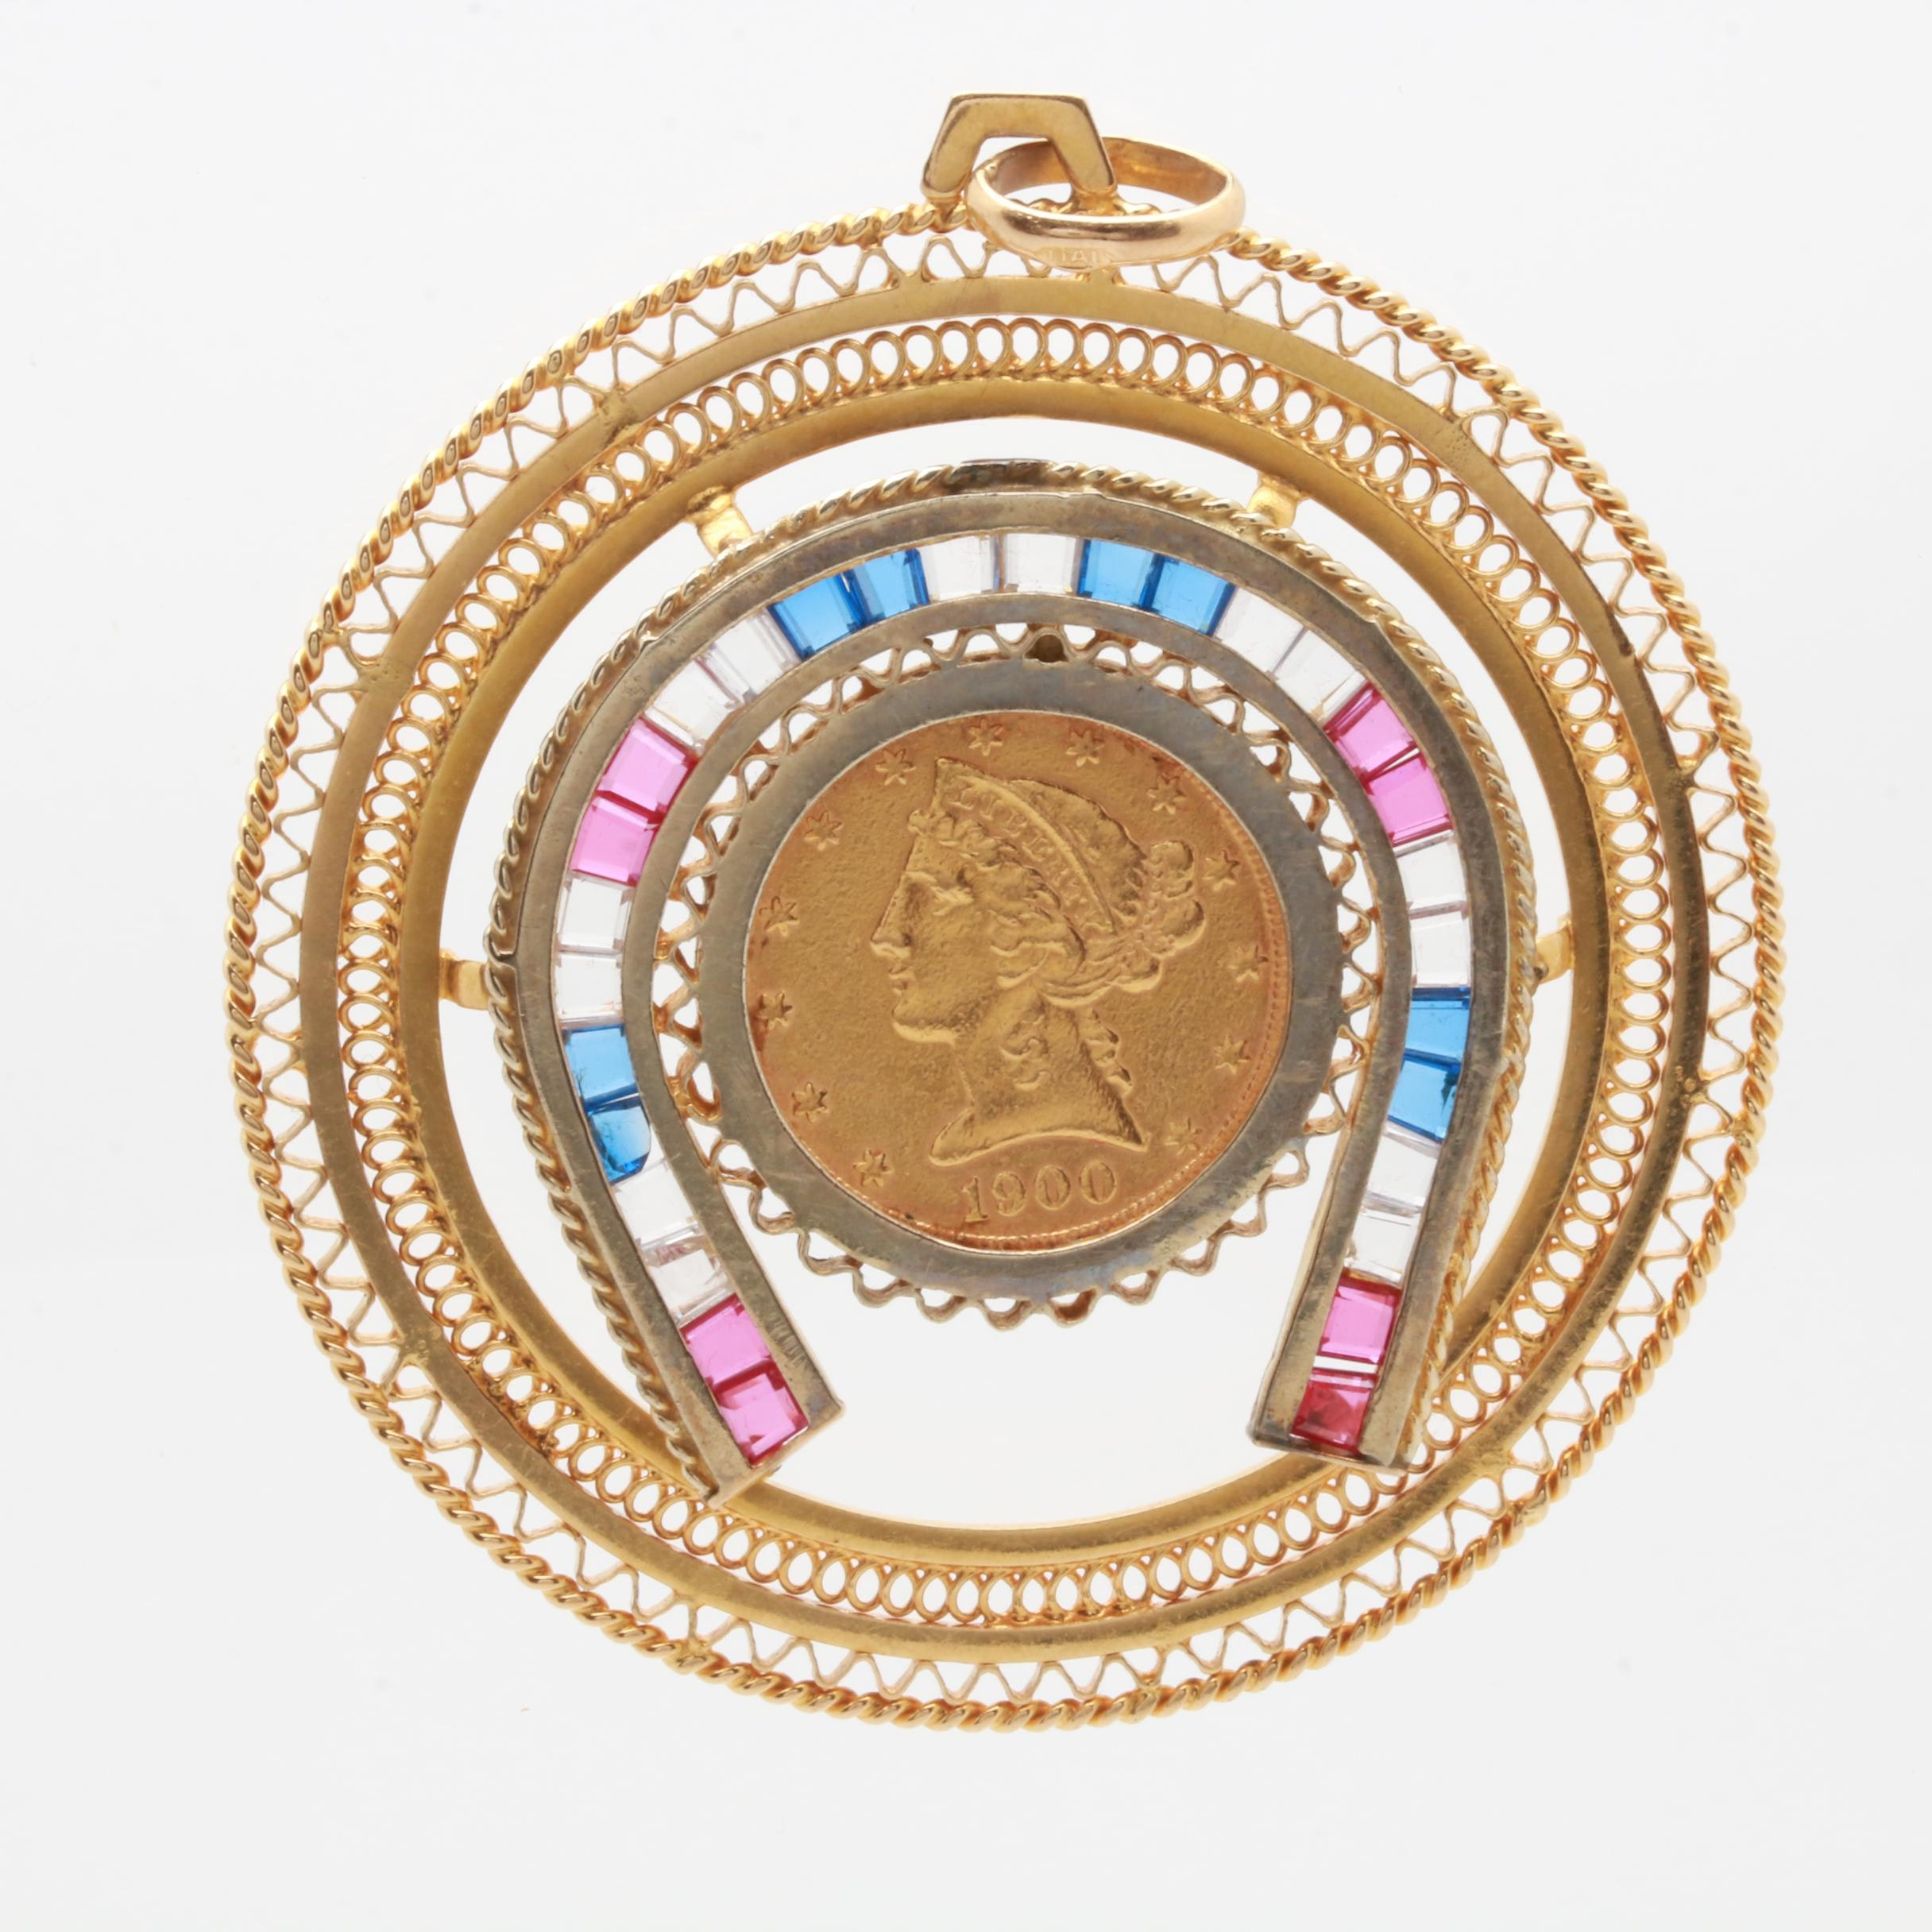 18K and 14K Gold Gemstone Pendant with 1900 $5 Liberty Head Gold Coin